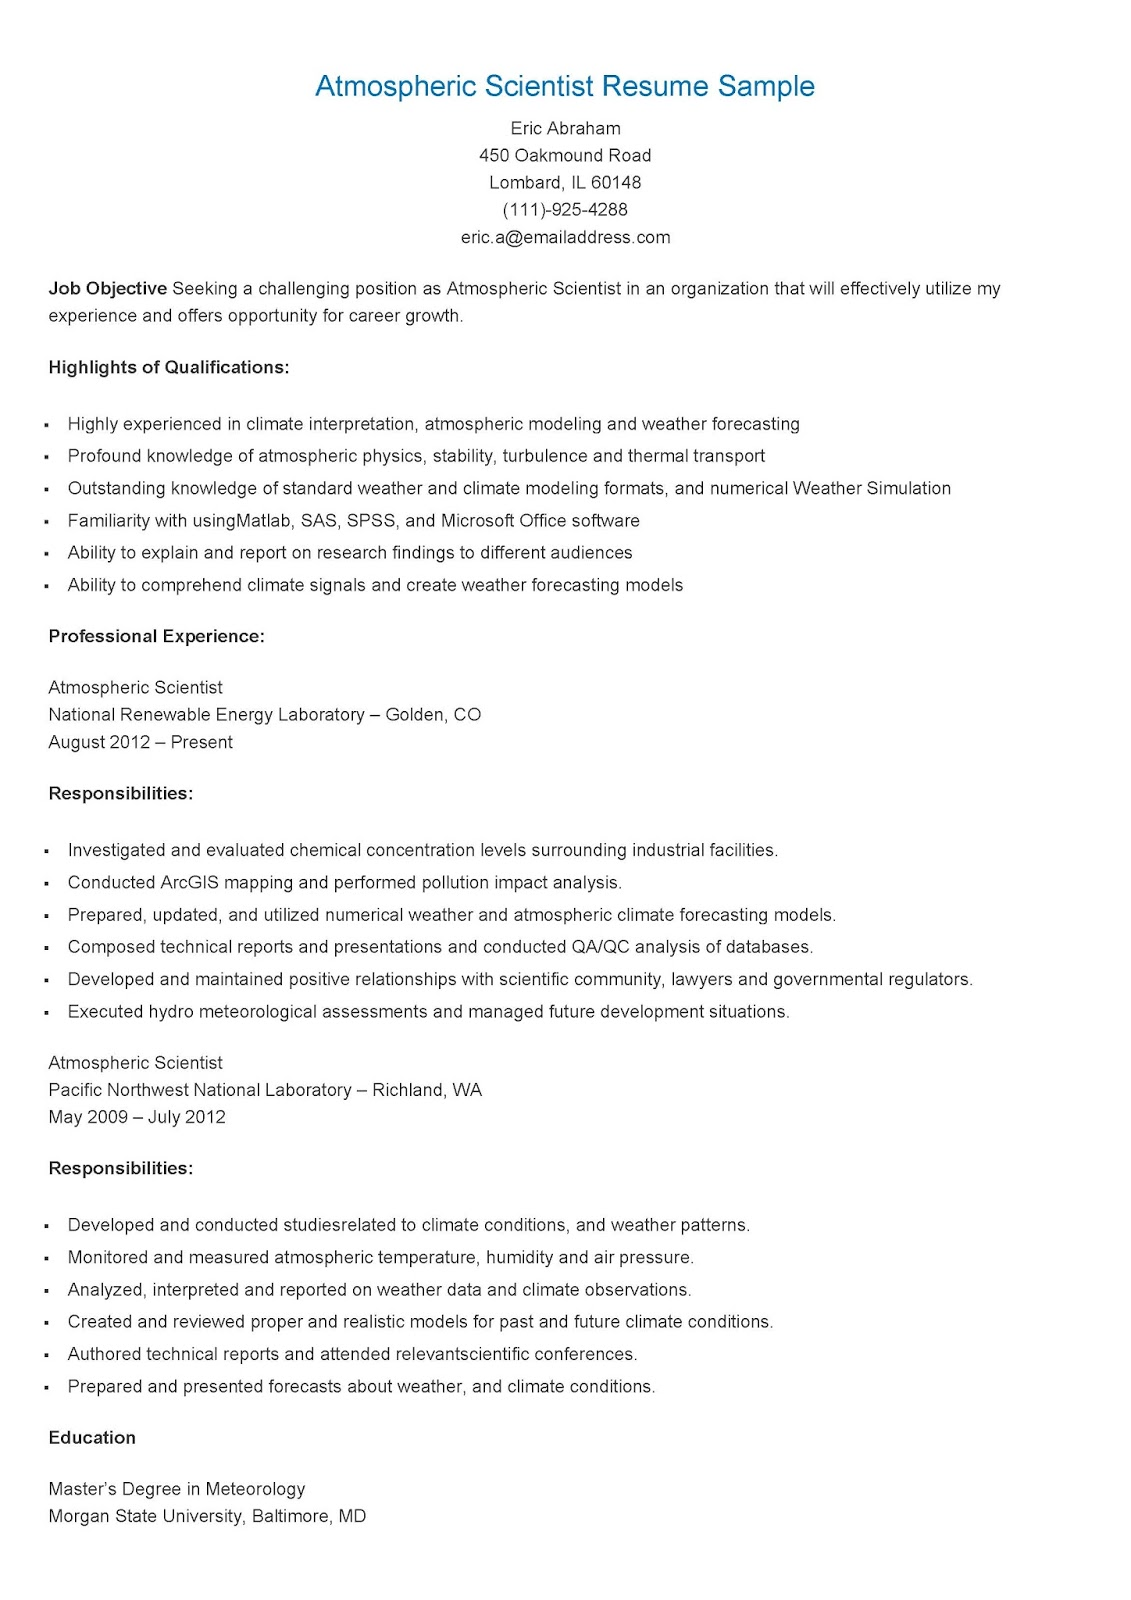 Resume Samples Atmospheric Scientist Resume Sample